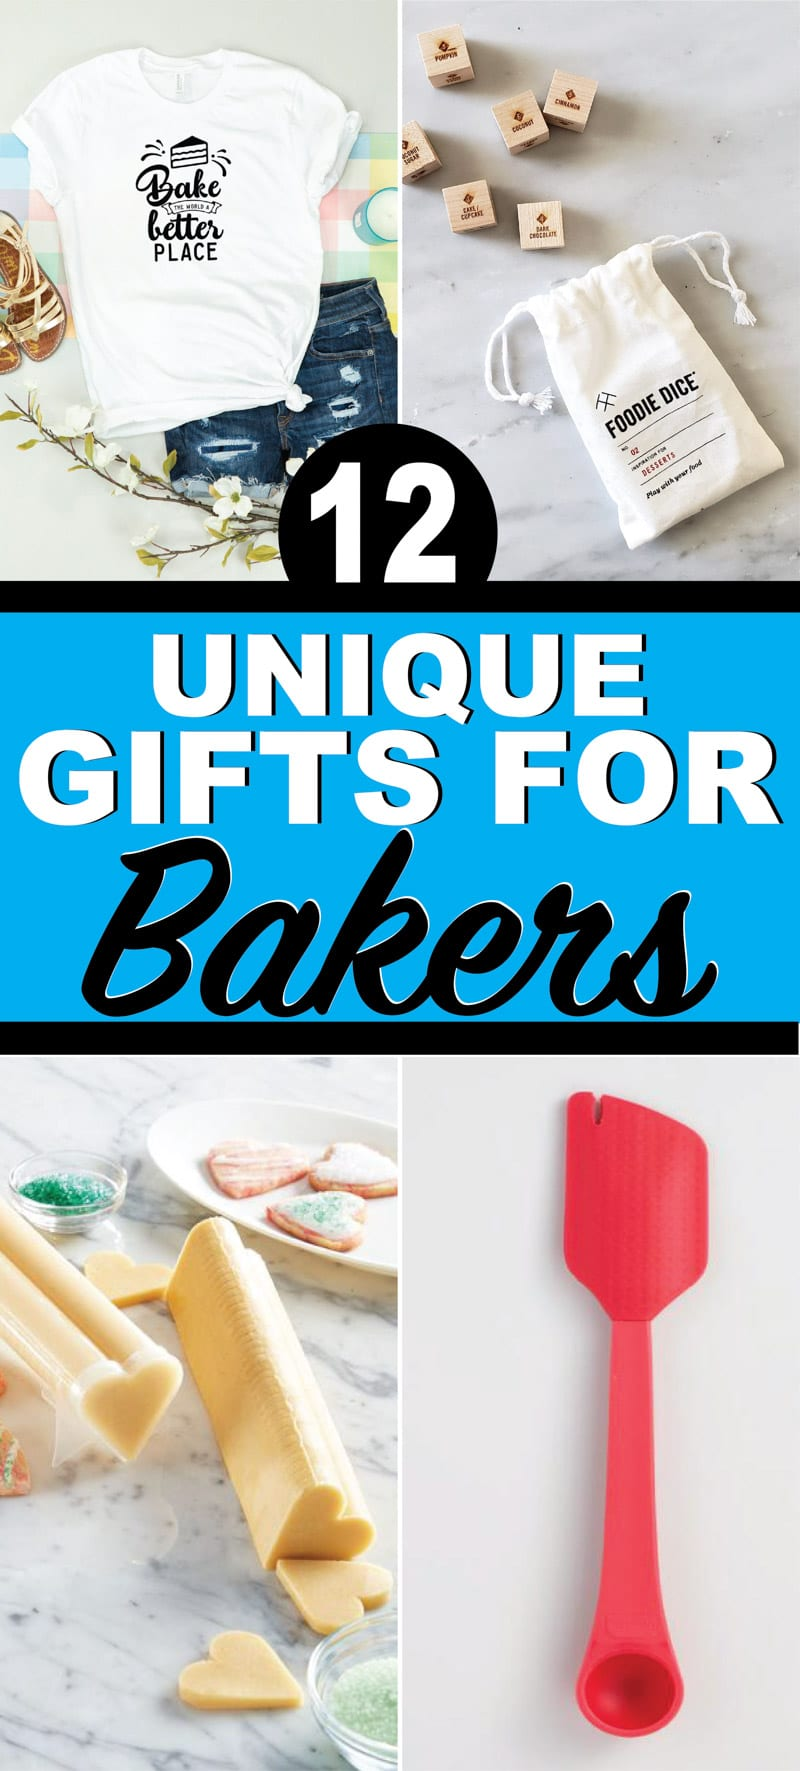 12 unique gifts for bakers! Tons of ideas for everyone from kids to your best friend! Personalized ideas, DIY ideas, and more!